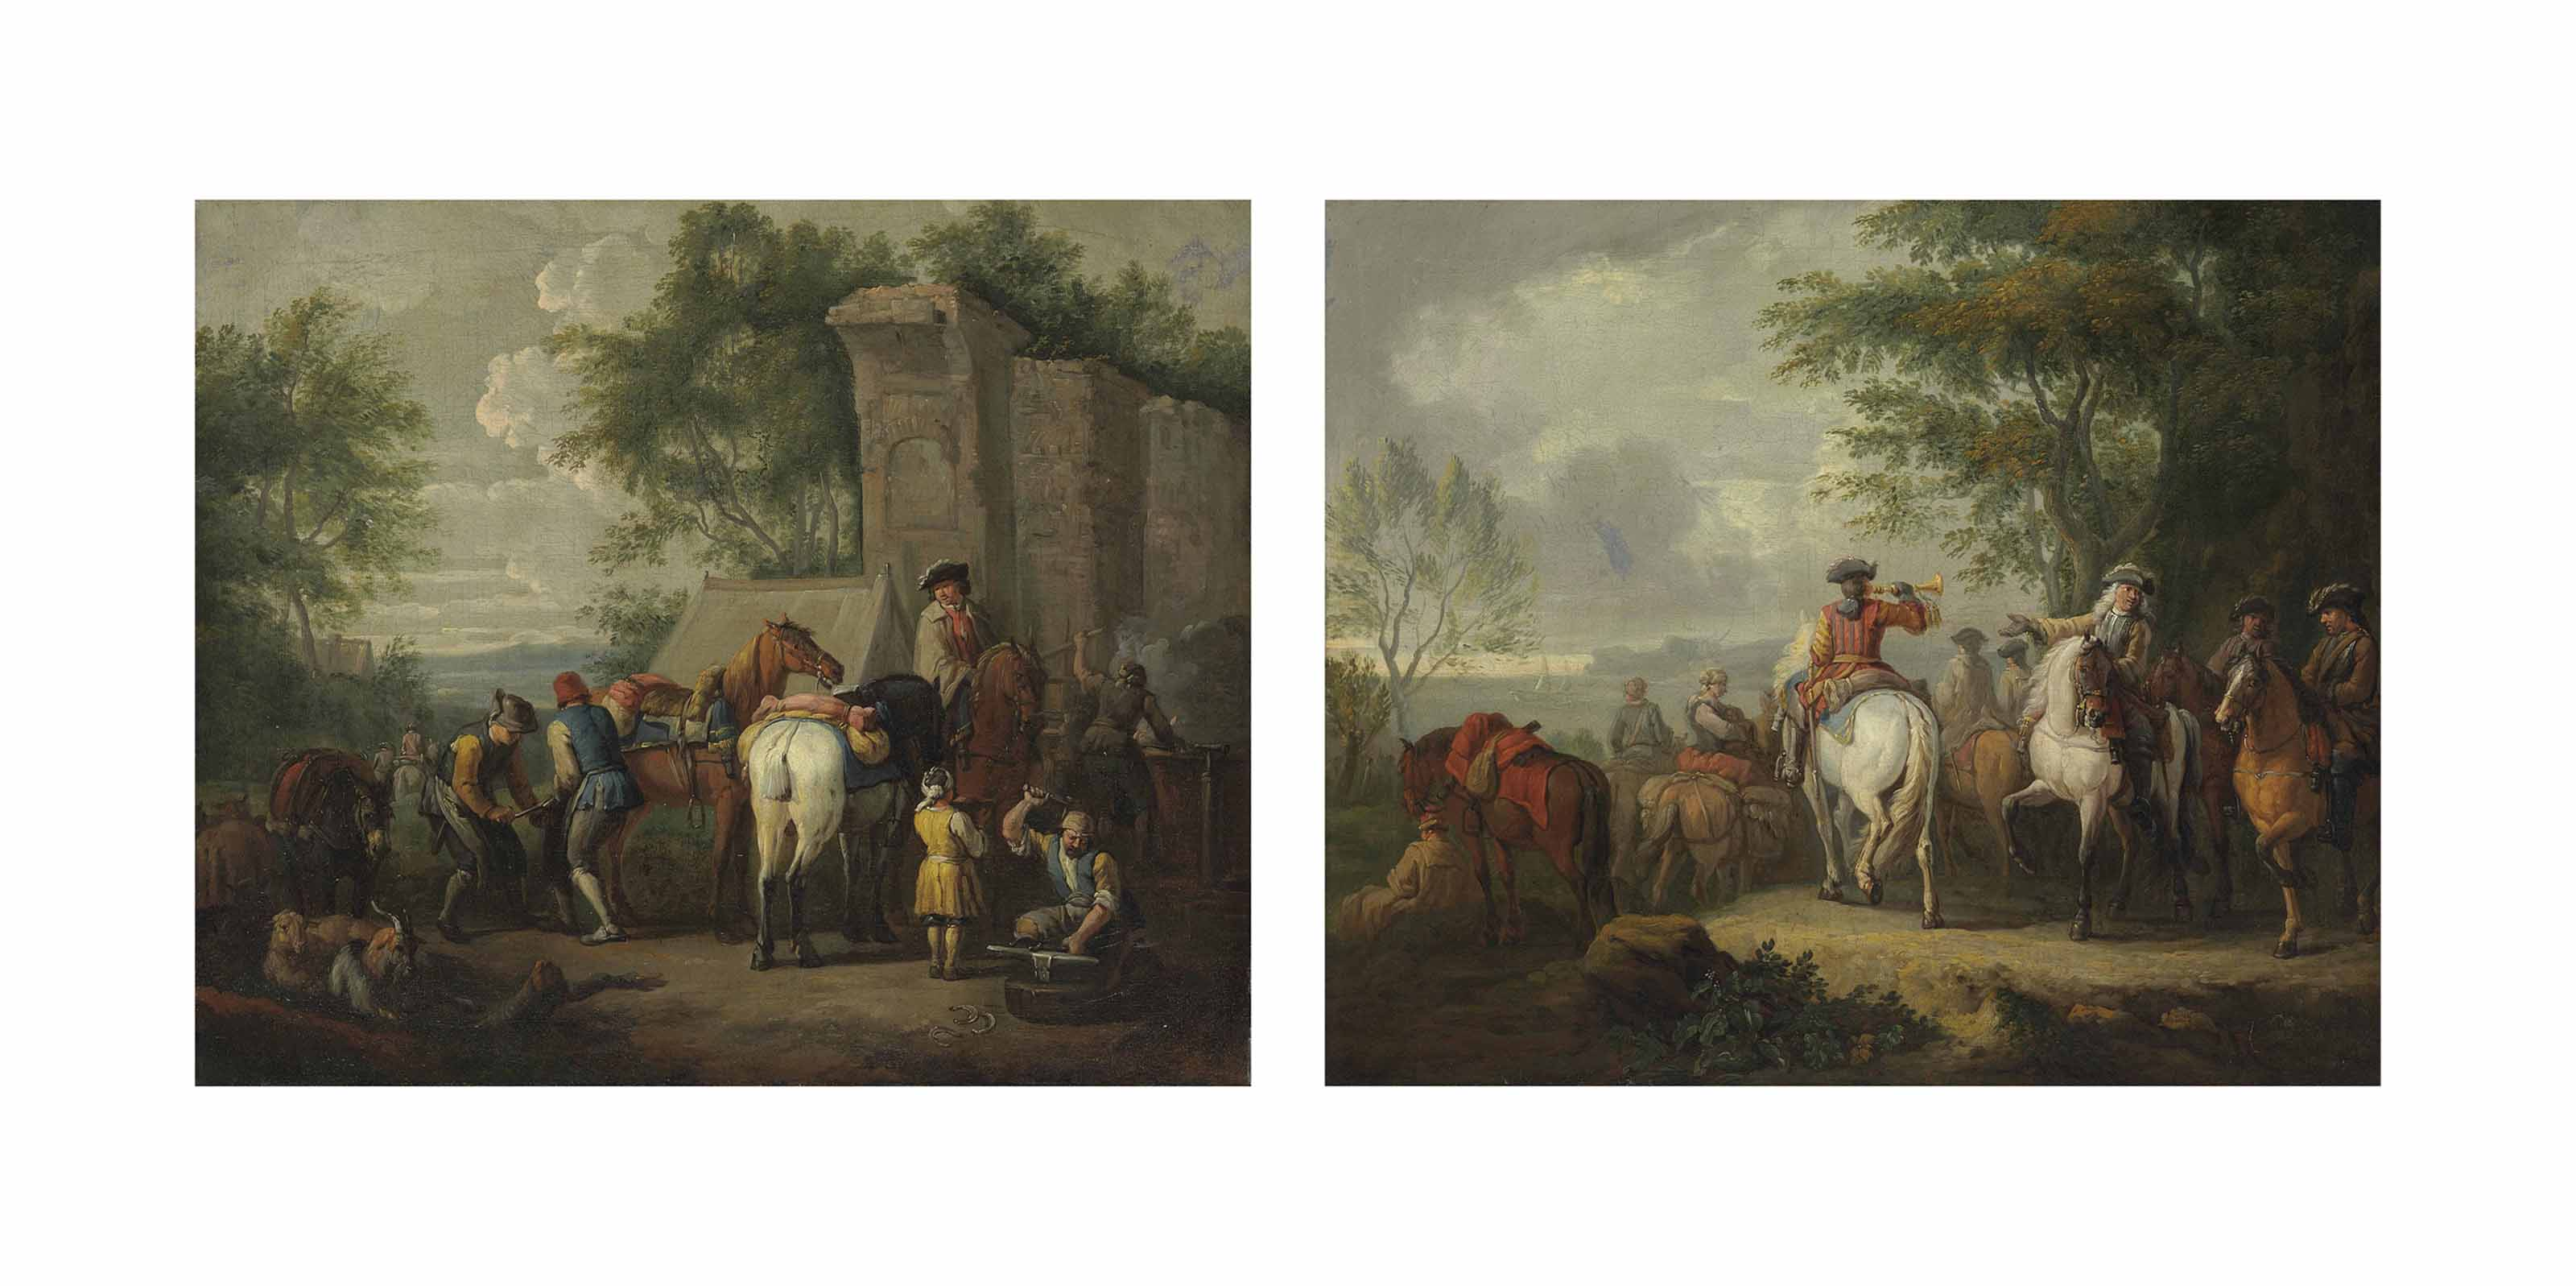 Cavaliers setting off on a journey; and A military blacksmith shoeing horses by a ruin